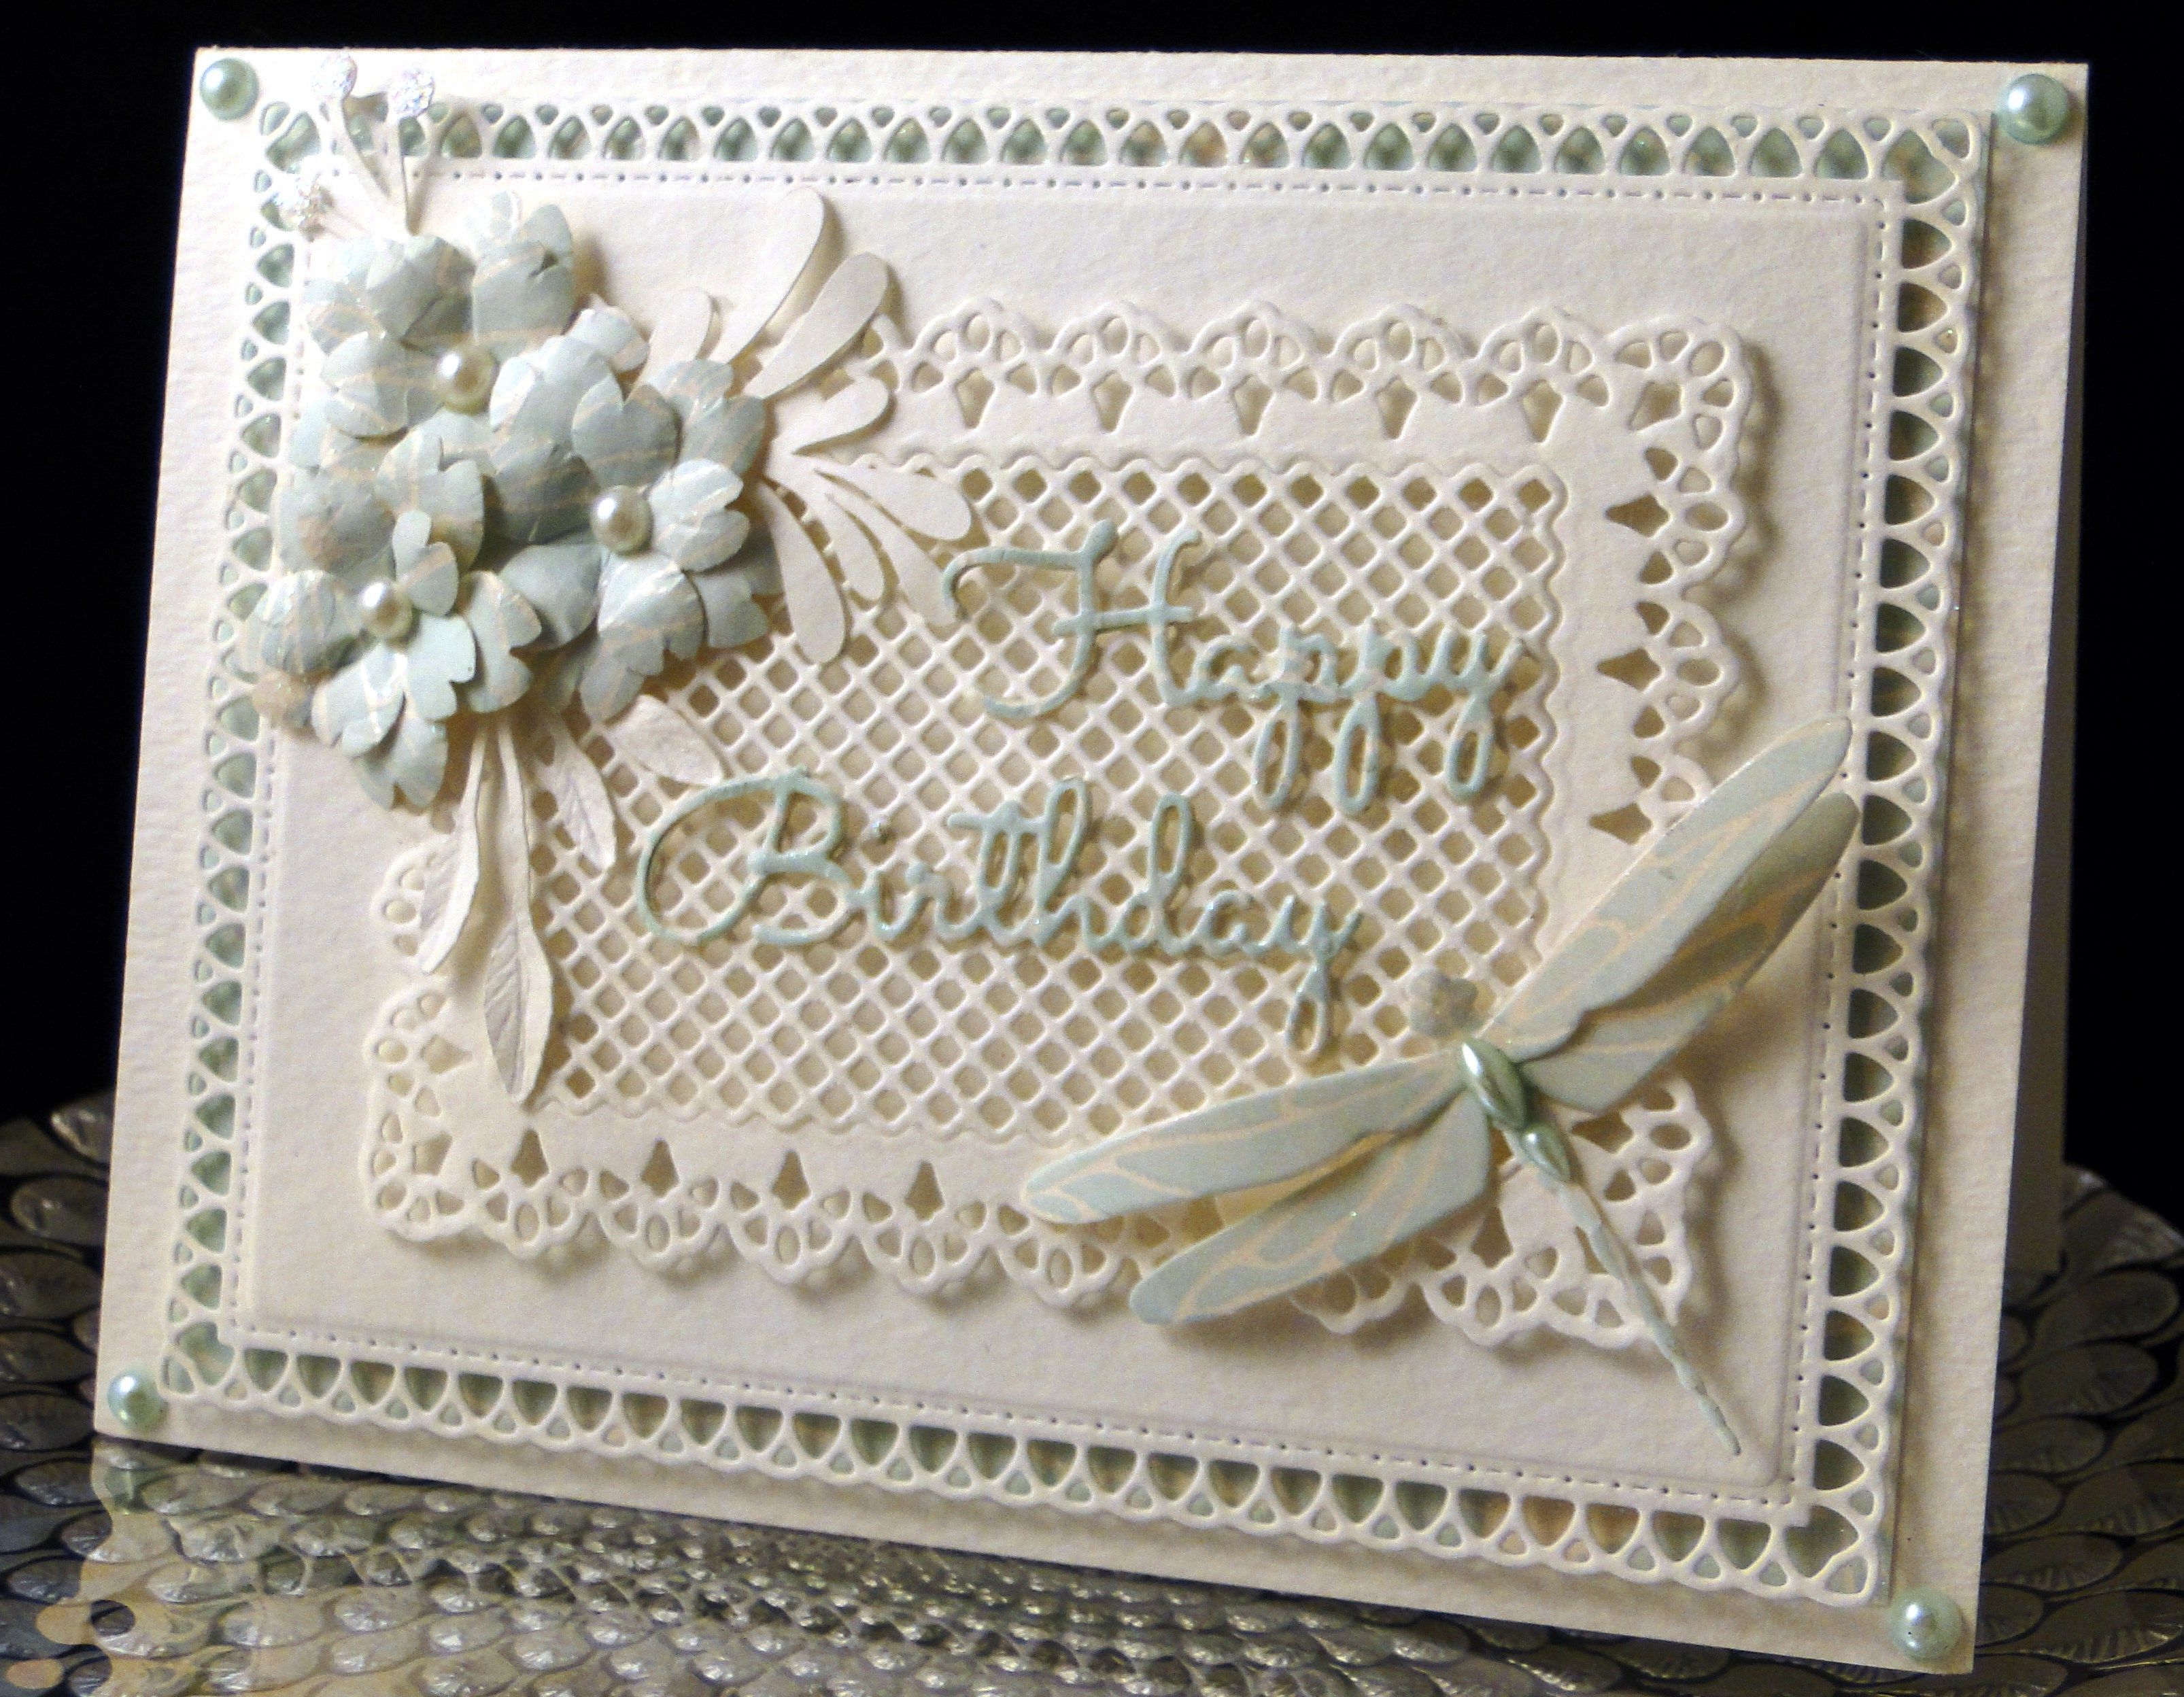 Bday card for Pam September 2016  The dies used for framing and base behind sentiment are by Gina Marie, Sentiment IO. The dragonfly is Memory Box. Flowers made  with Punch Bunch punches. The foliage was cut on the Silhouette. Made by Peggy Dollar